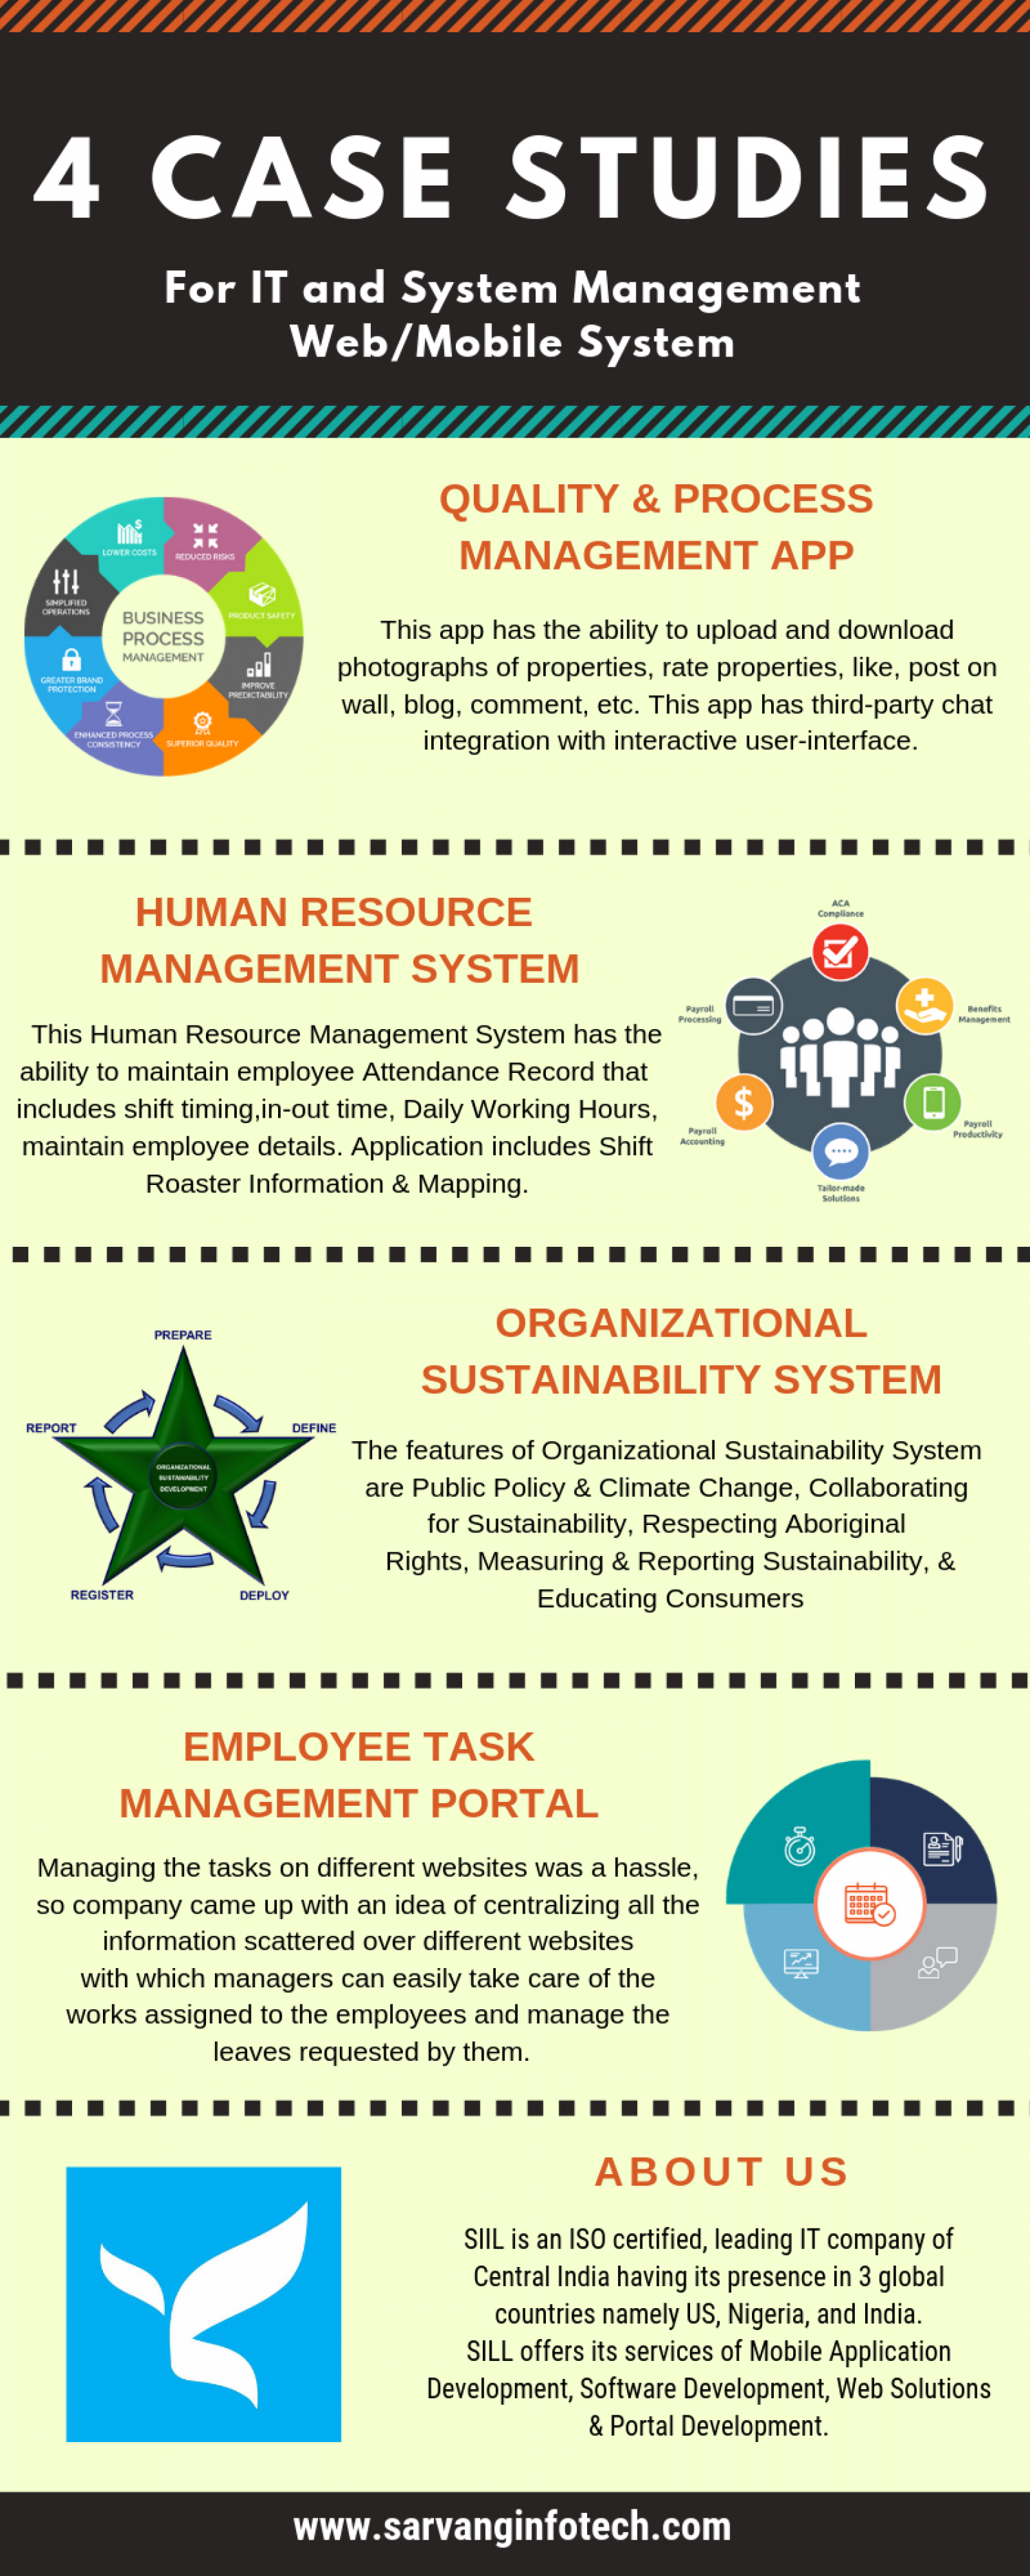 4 Web/Mobile Case Studies on IT & System Management Infographic